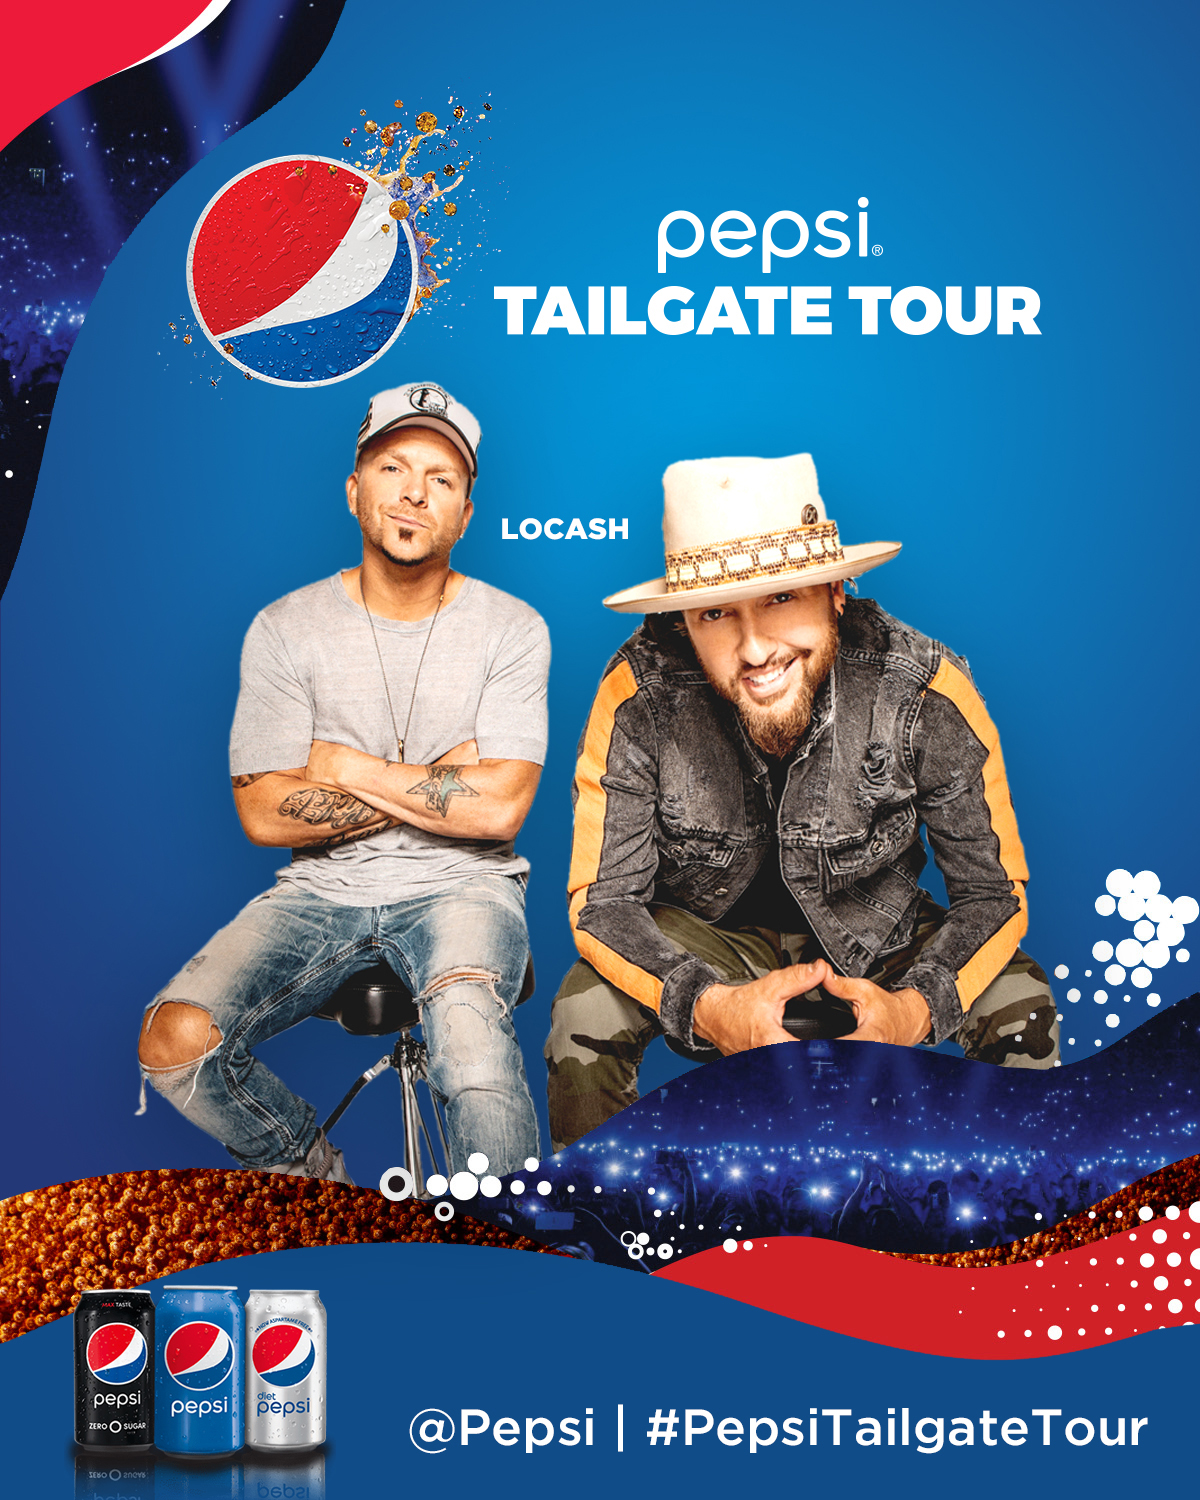 Pepsi Tailgate Tour featuring Wheelhouse Records' country breakout duo LOCASH